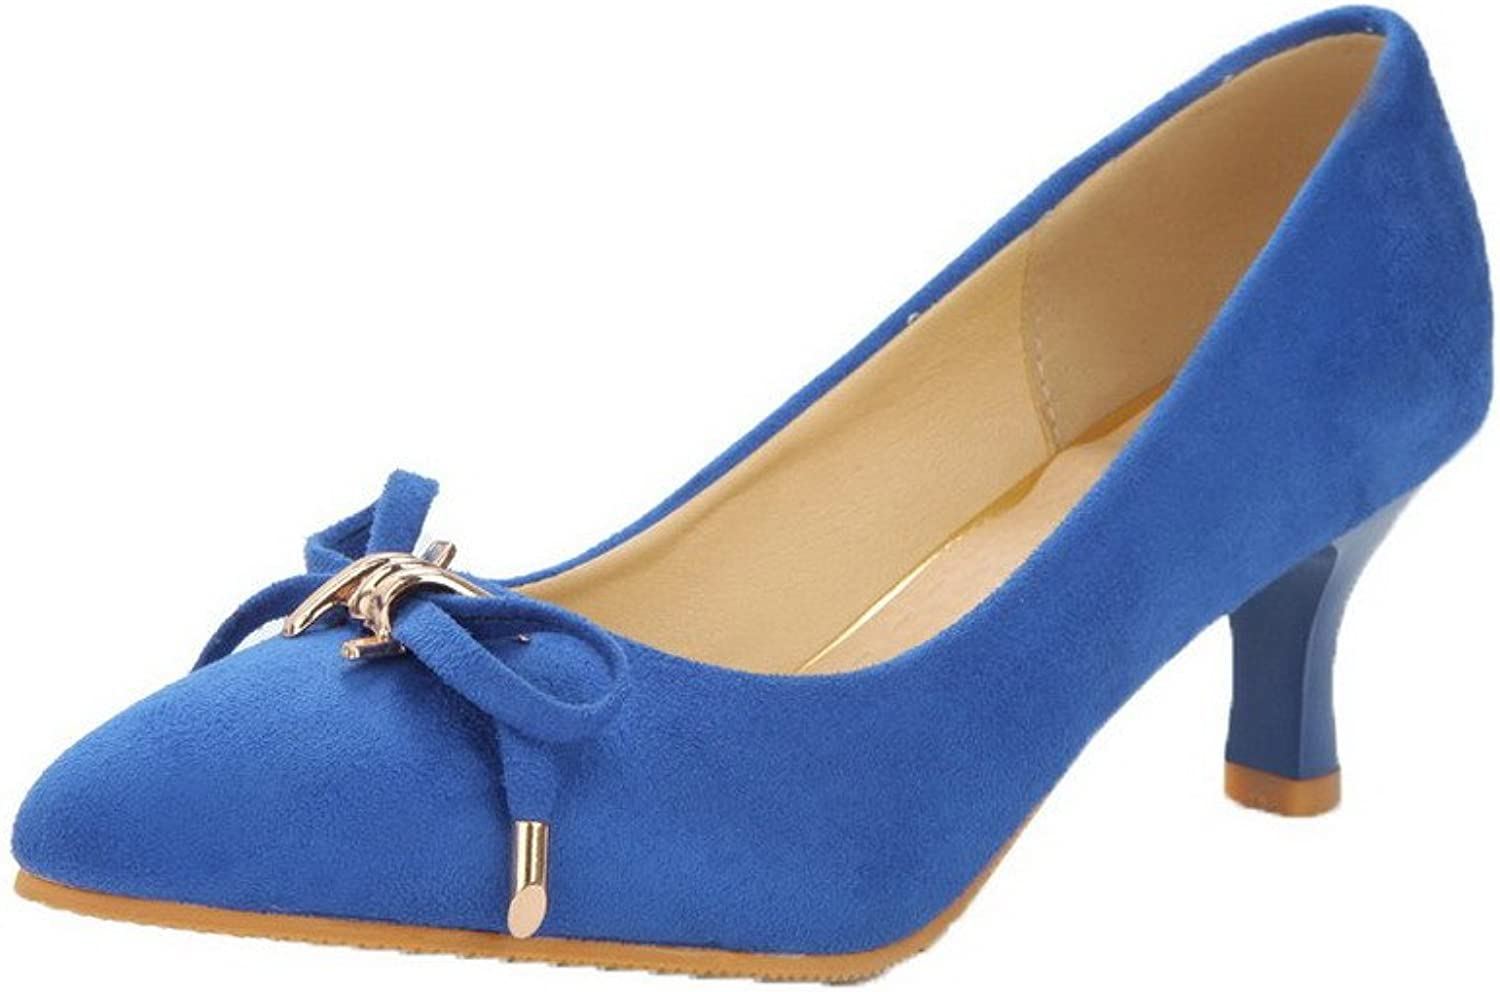 AmoonyFashion Women's Imitated Suede Solid Pull On Round Closed Toe Kitten Heels Pumps-shoes